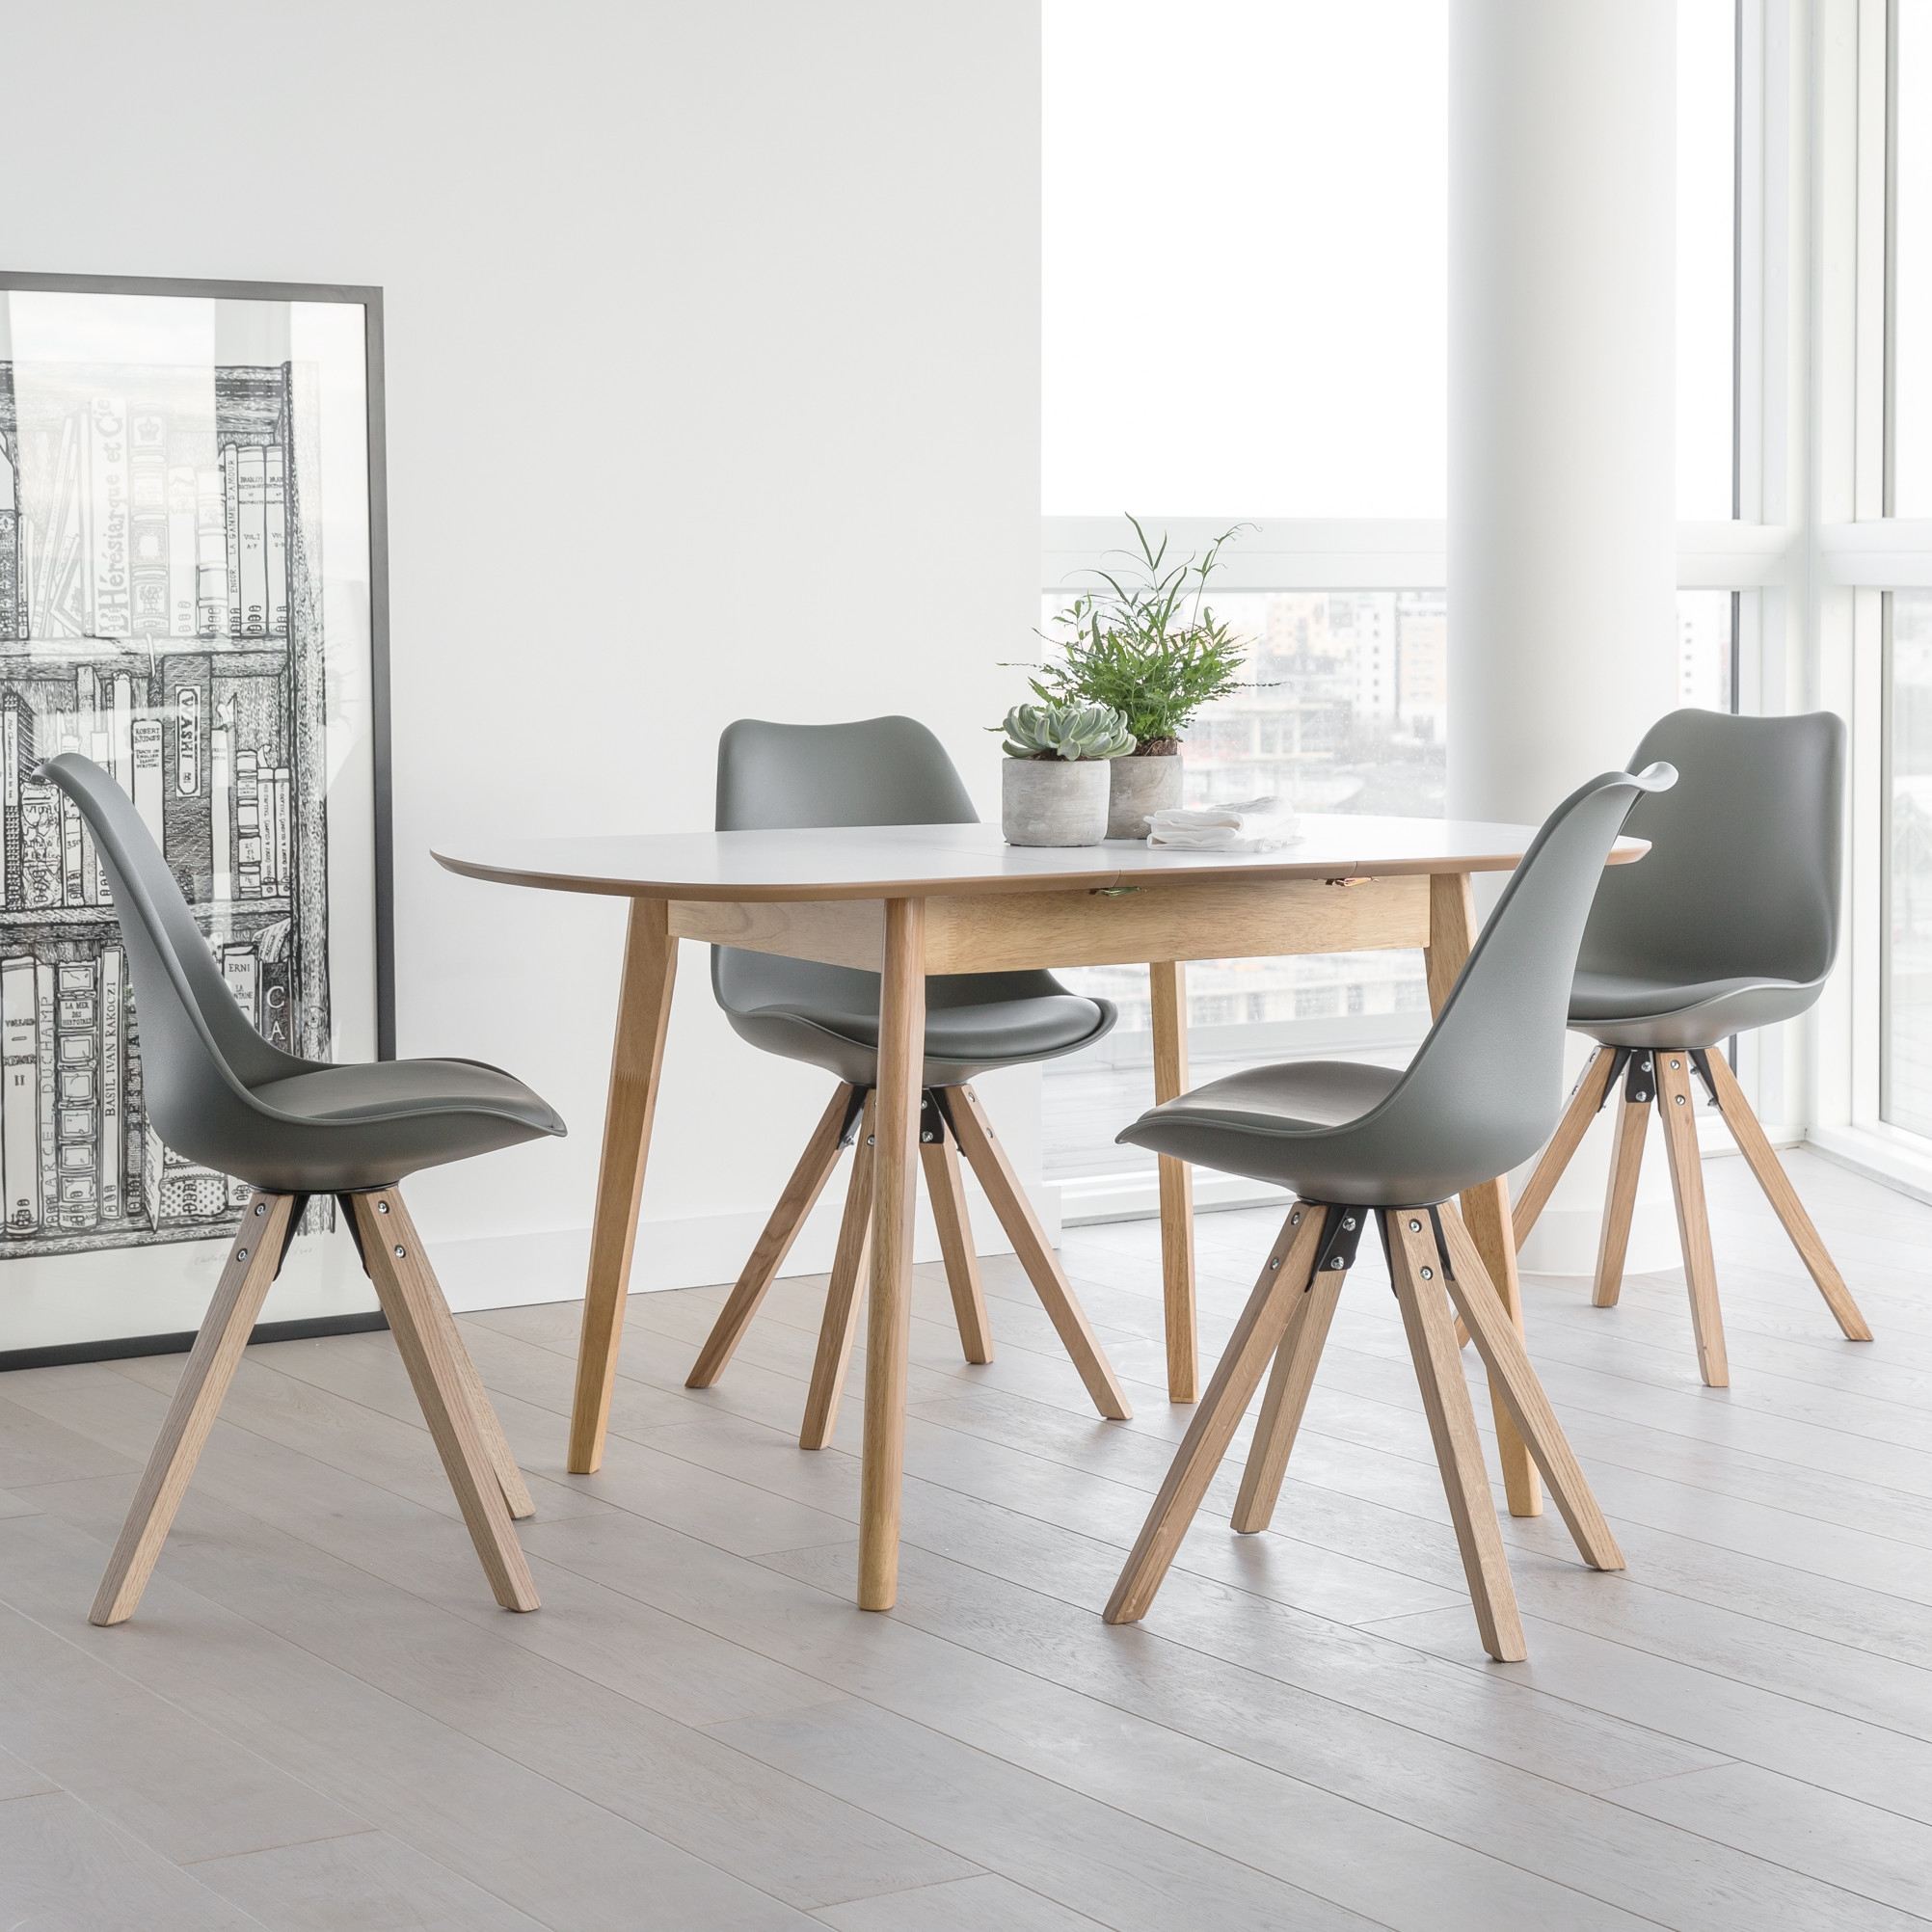 OutAndOutOriginal Dean Extendable Dining Table and 4 Chairs ETAN1011